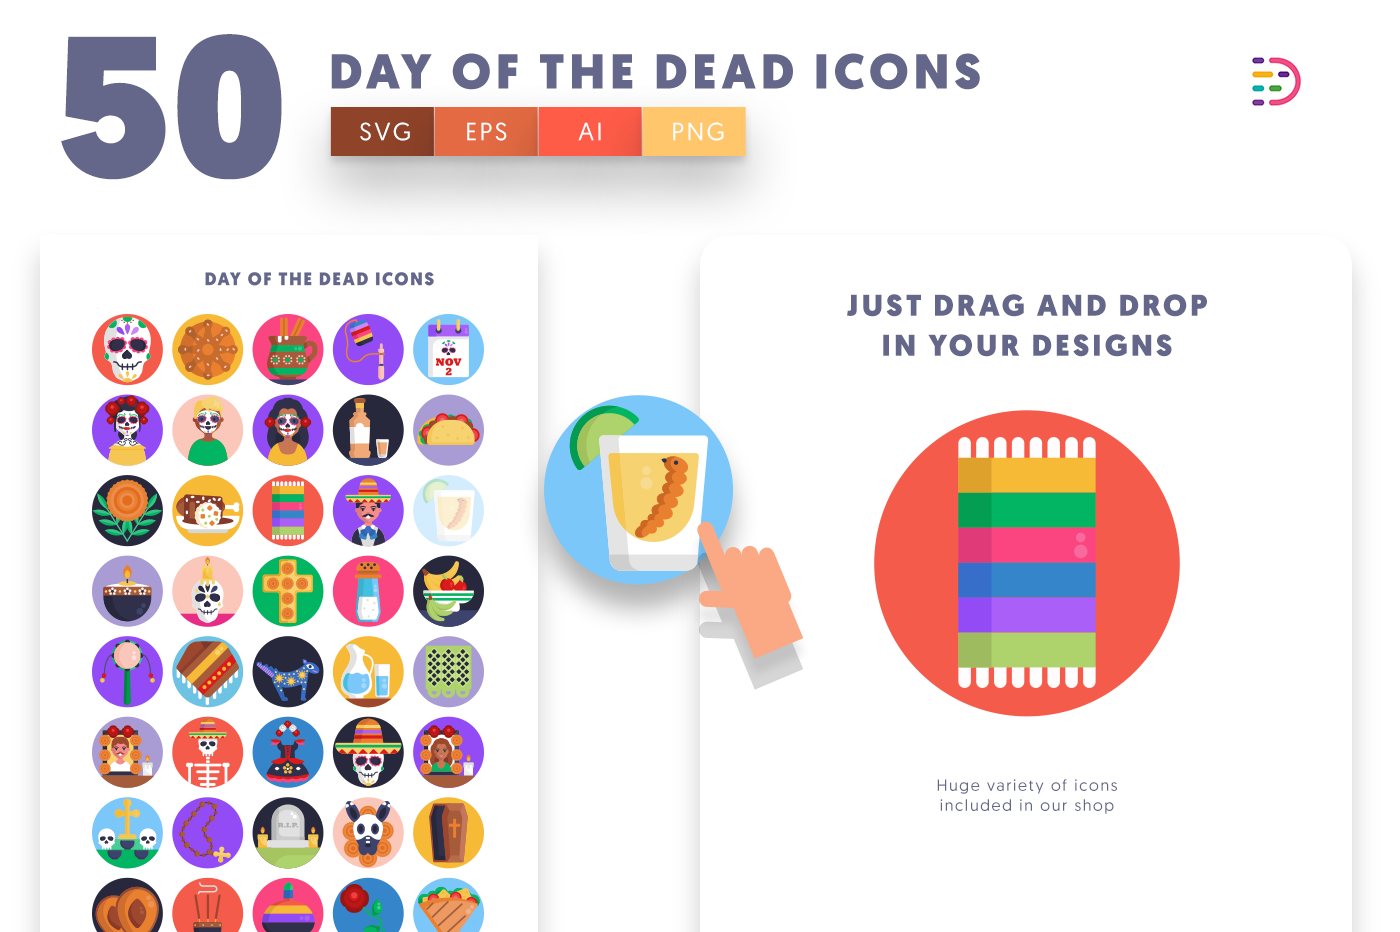 Drag and drop vector 50 Day of the Dead Icons